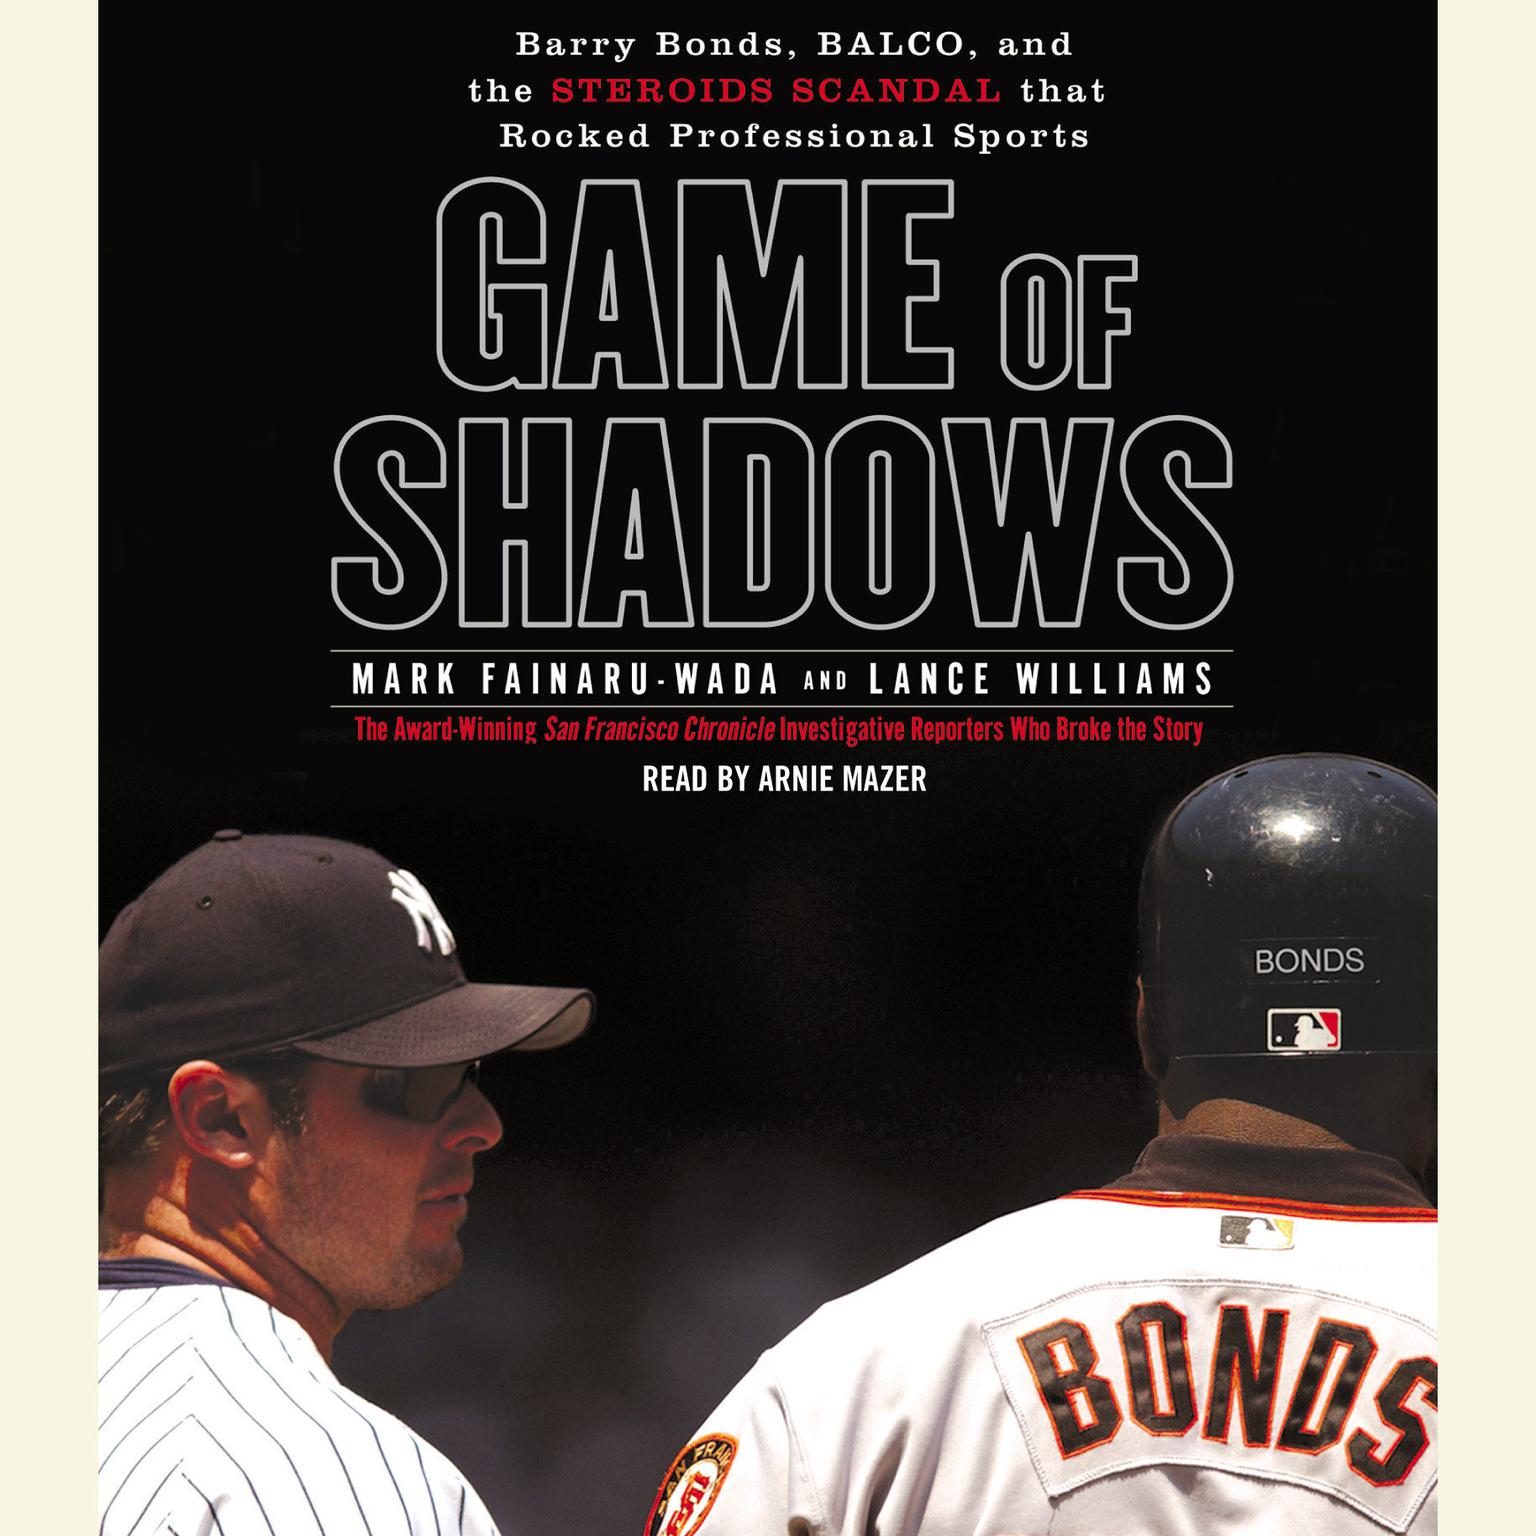 Printable Game of Shadows: Barry Bonds, BALCO, and the Steroids Scandal that Rocked Professional Sports Audiobook Cover Art